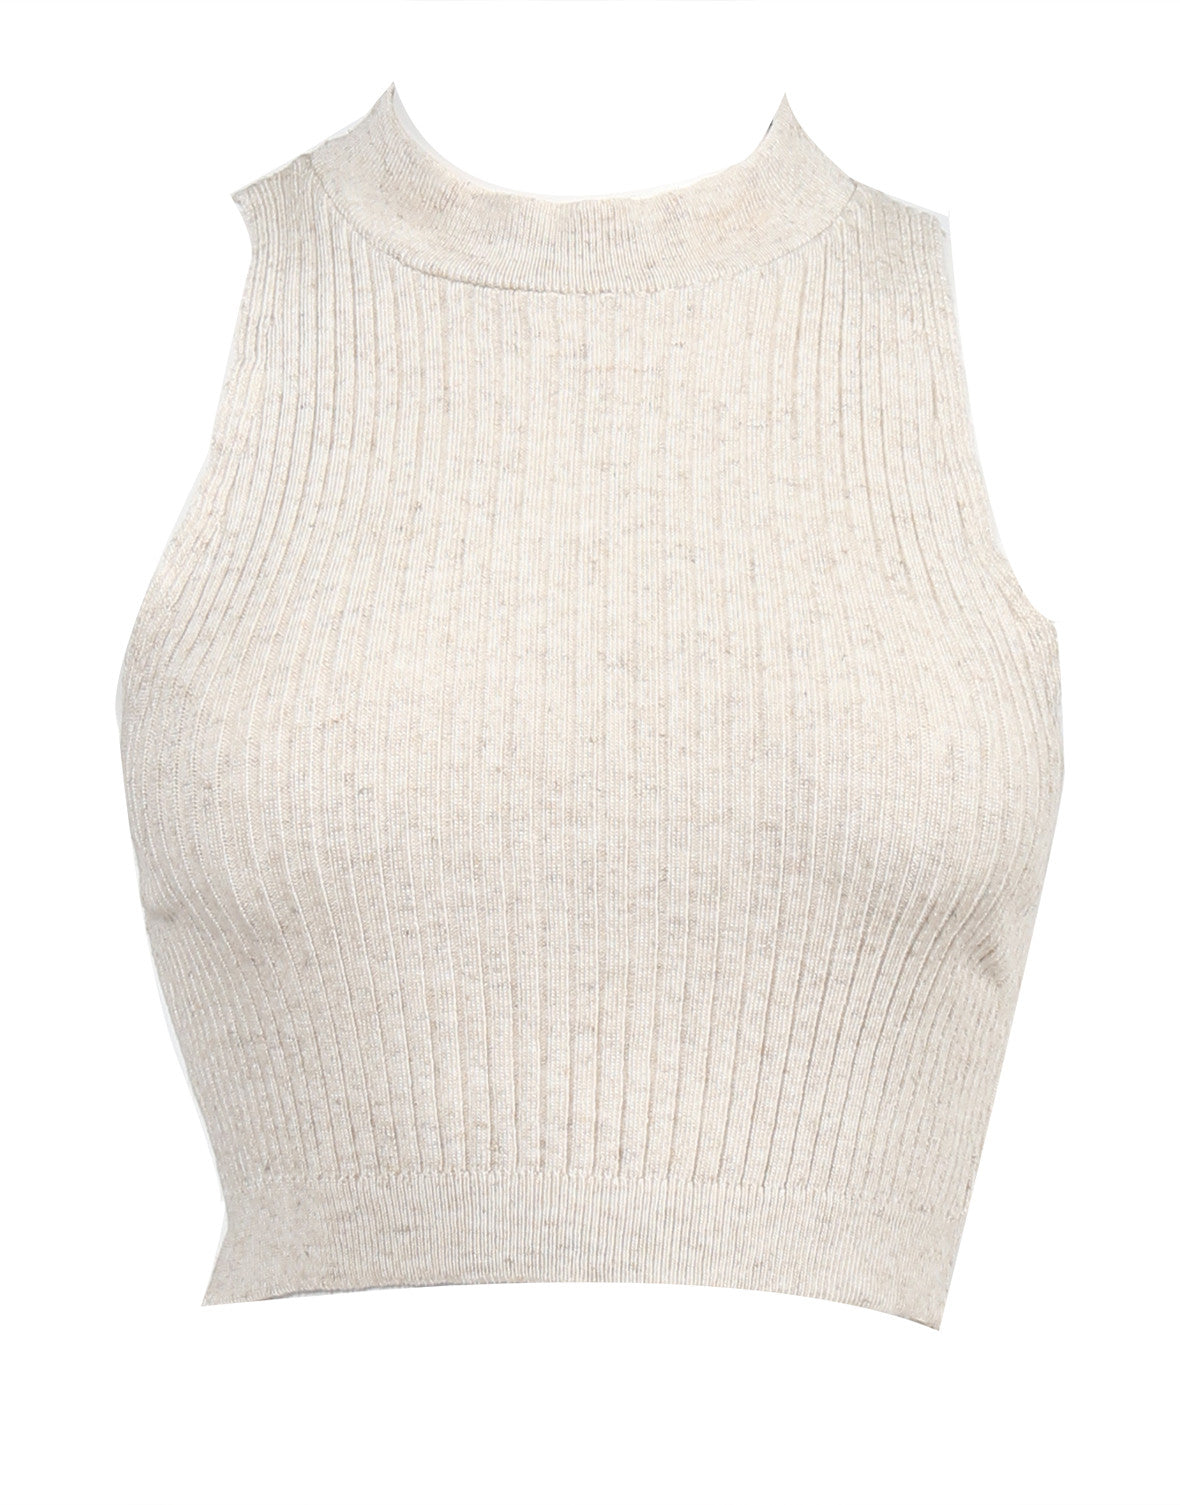 Ribbed Mock Neck Cropped Top - Oatmeal - Large - 2020AVE